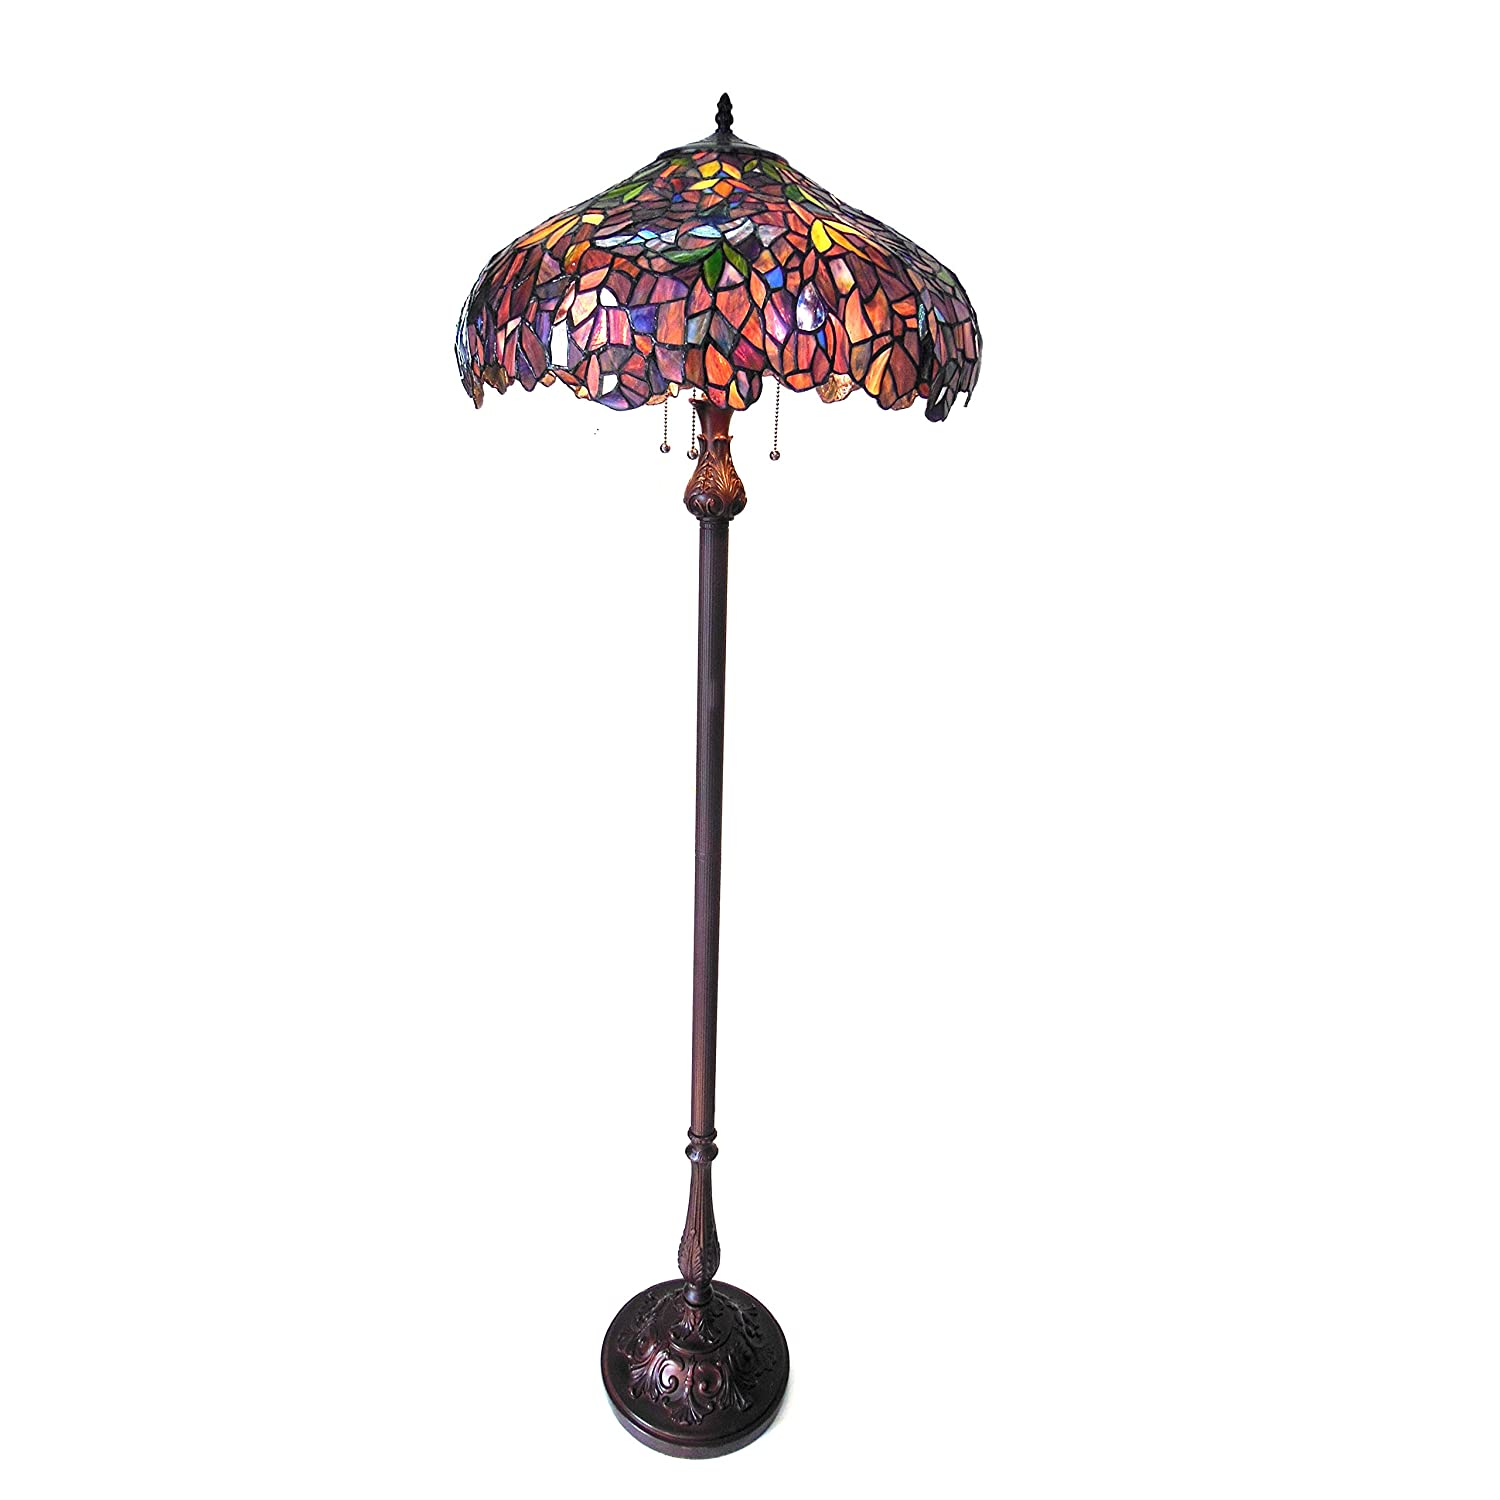 Chloe CH18045PW20-FL3 Katie Tiffany-Style Floor Lamp with 20 Shade, 64 x 20 x 20, Multicolor